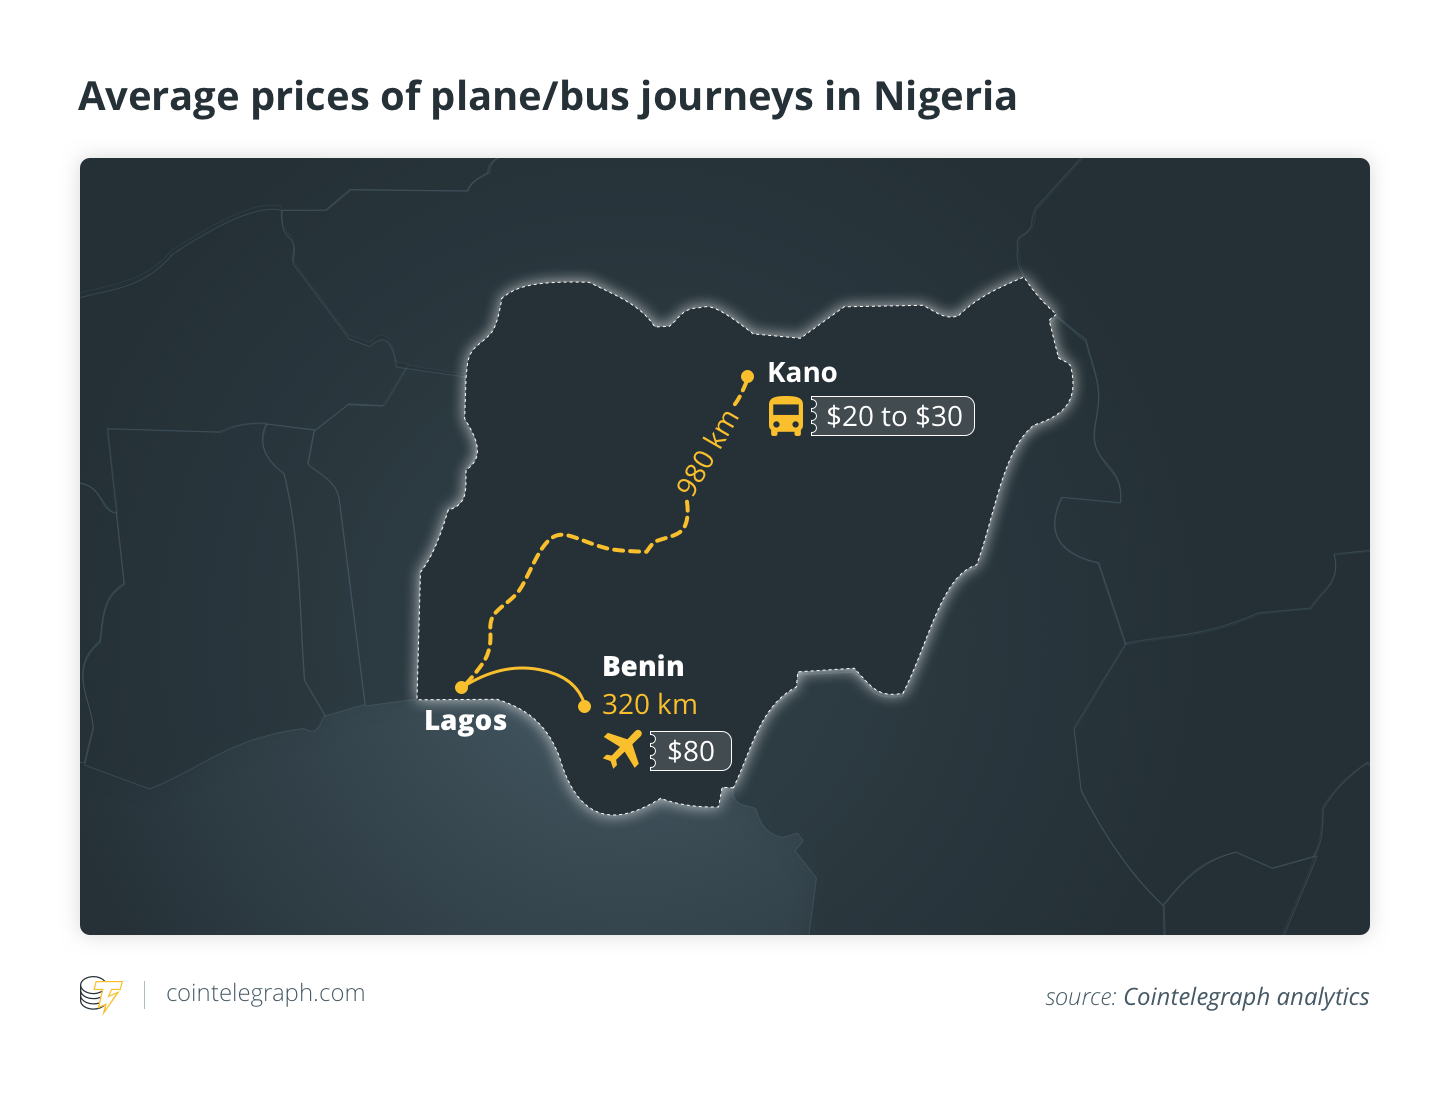 Average prices of plane/bus journeys in Nigeria